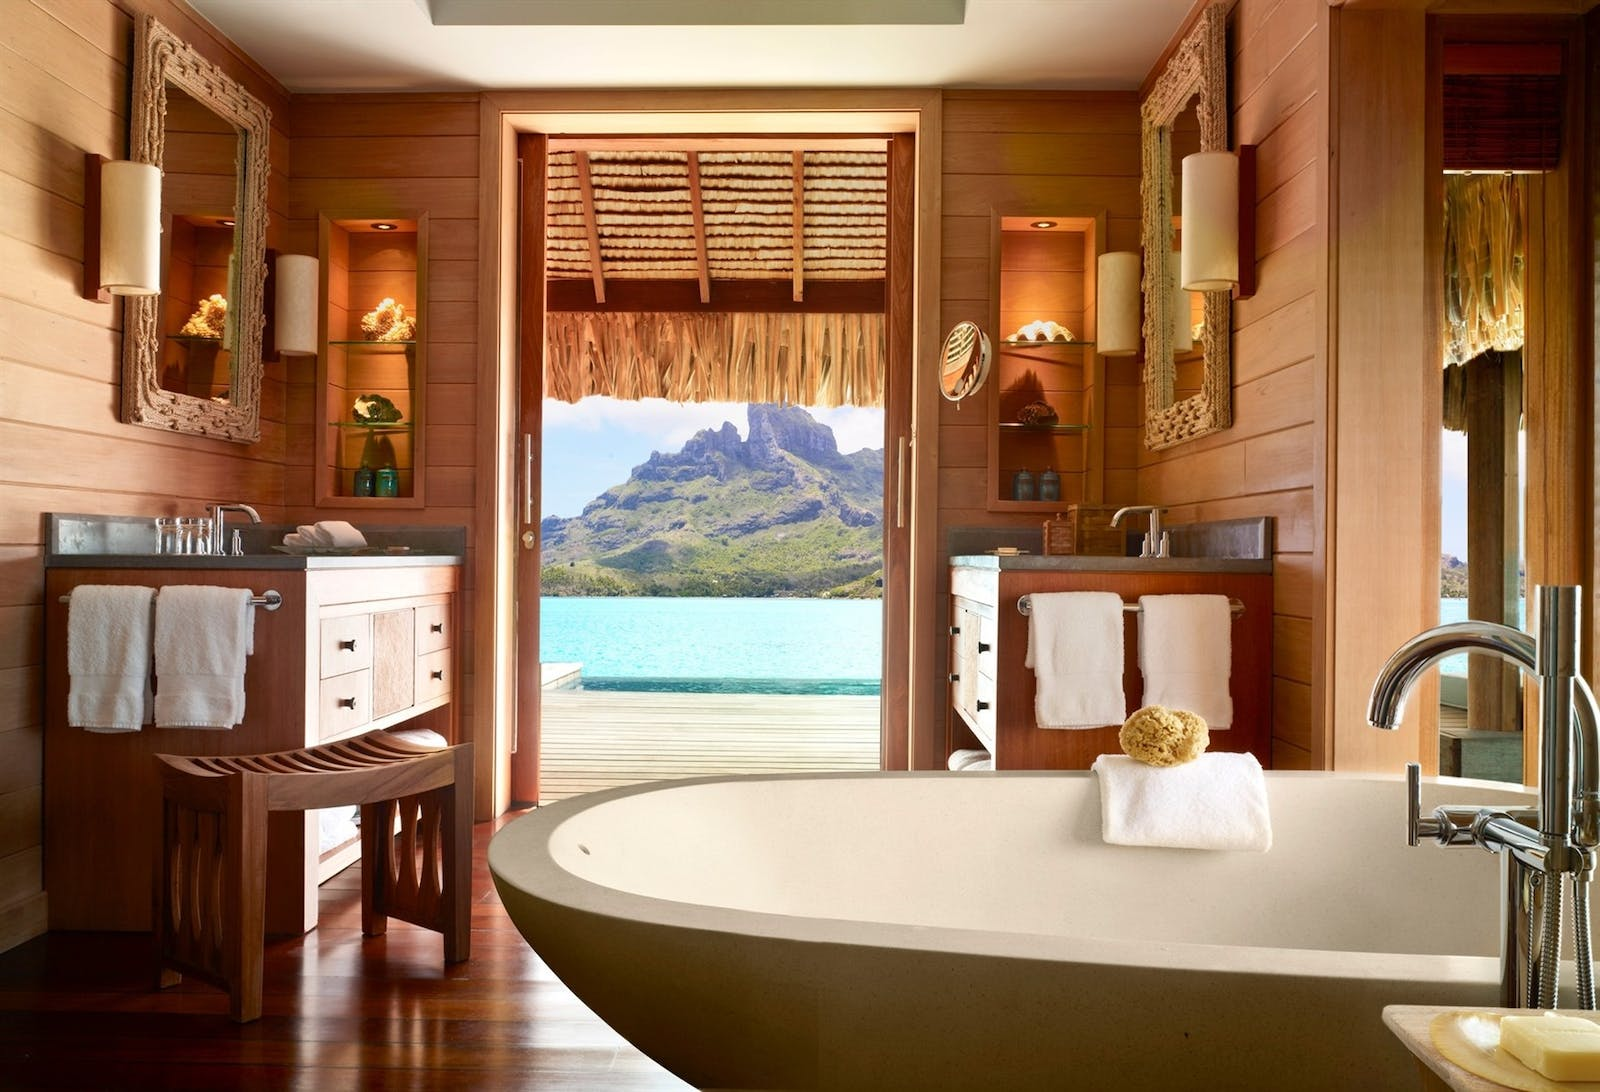 Bathroom at Four Seasons Bora Bora Resort, French Polynesia